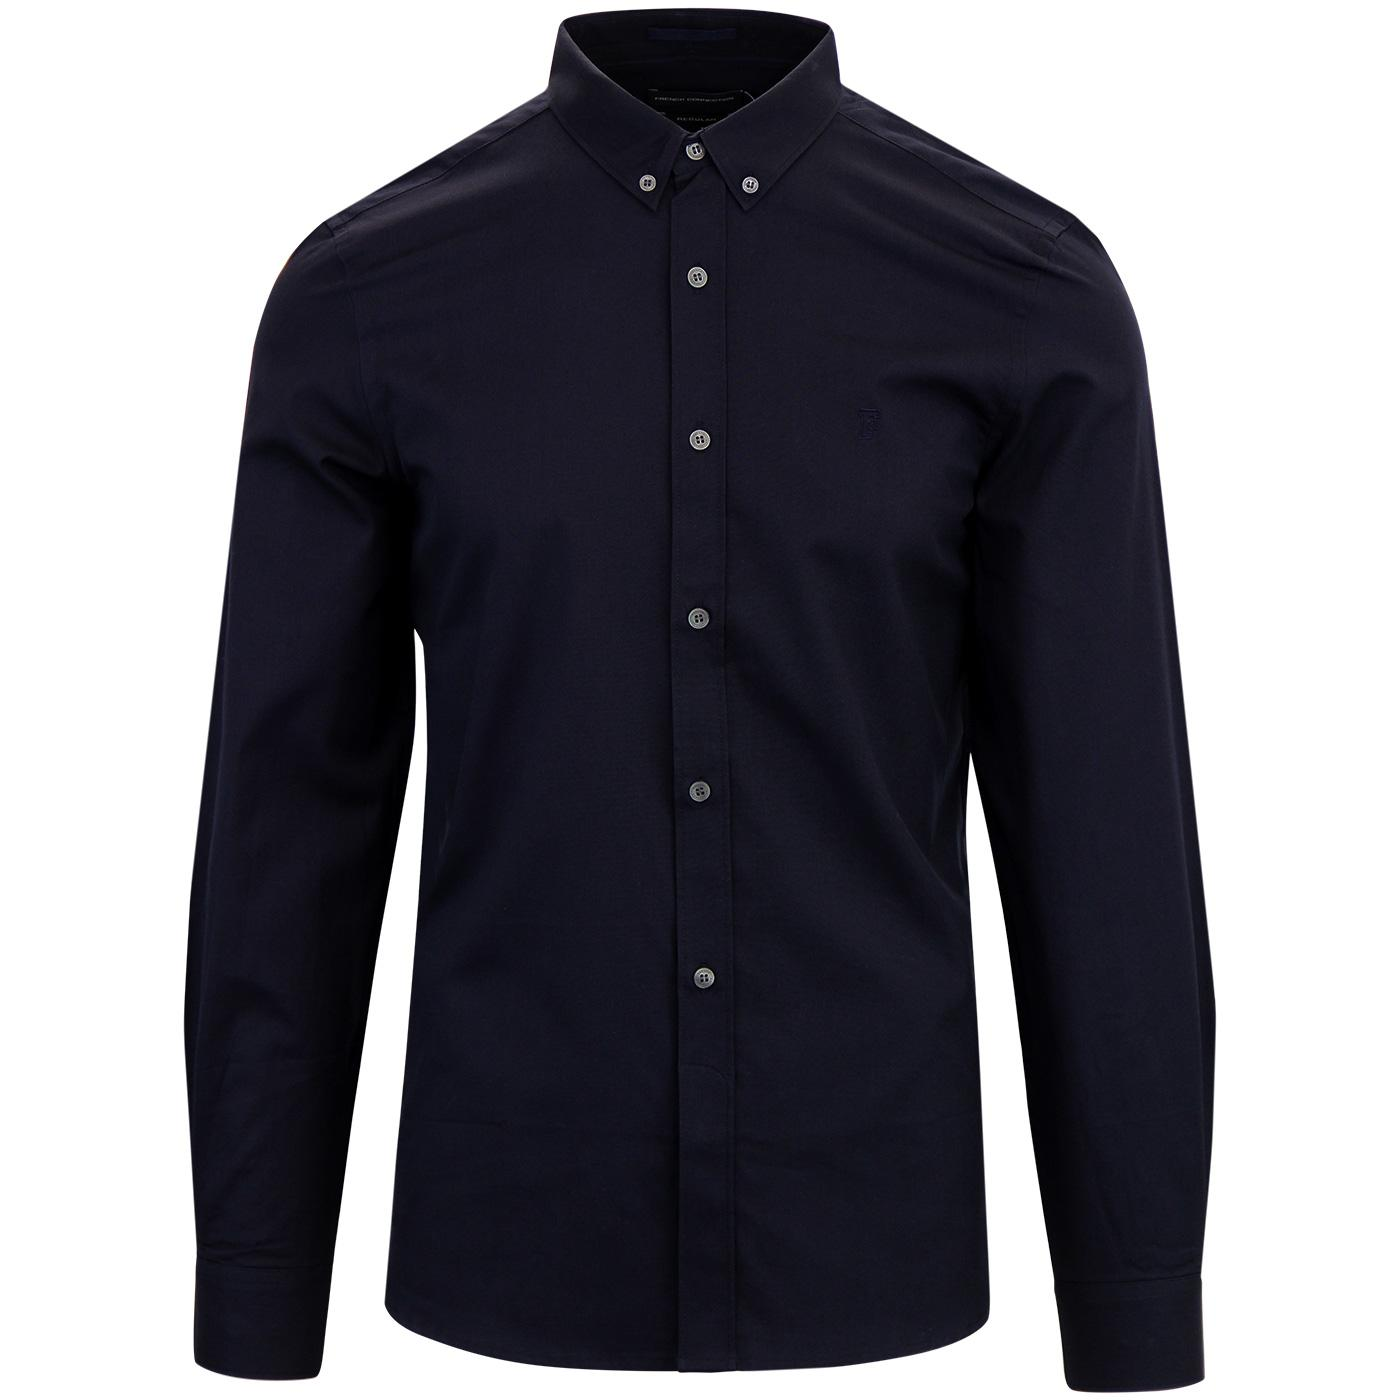 FRENCH CONNECTION Retro Classic Soft Oxford Shirt